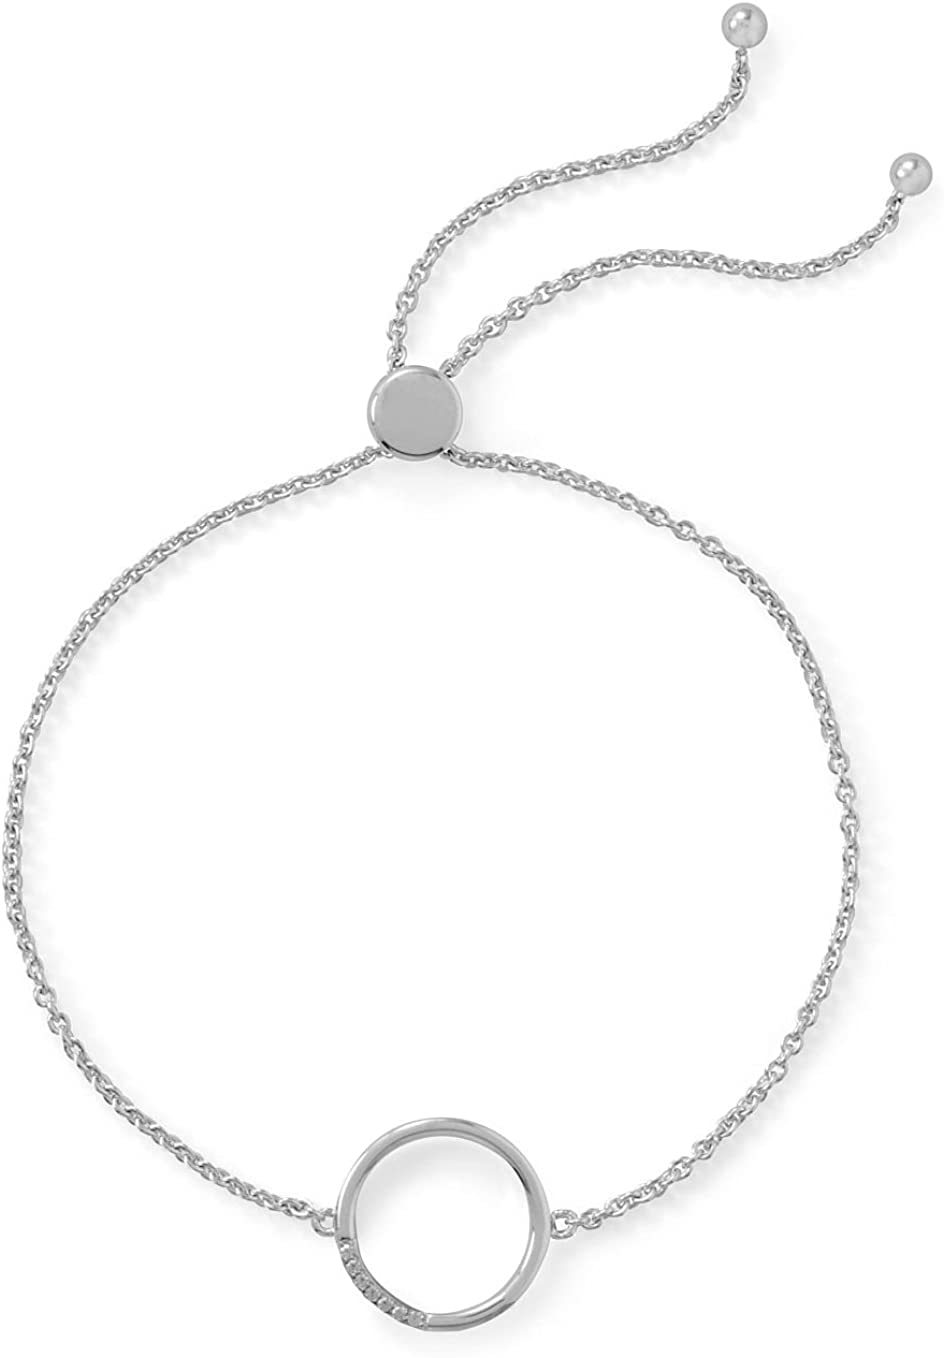 Adjusts to 9-1//2 inches Rhodium Plated Sterling Silver Pave CZ Circle Bolo Bracelet